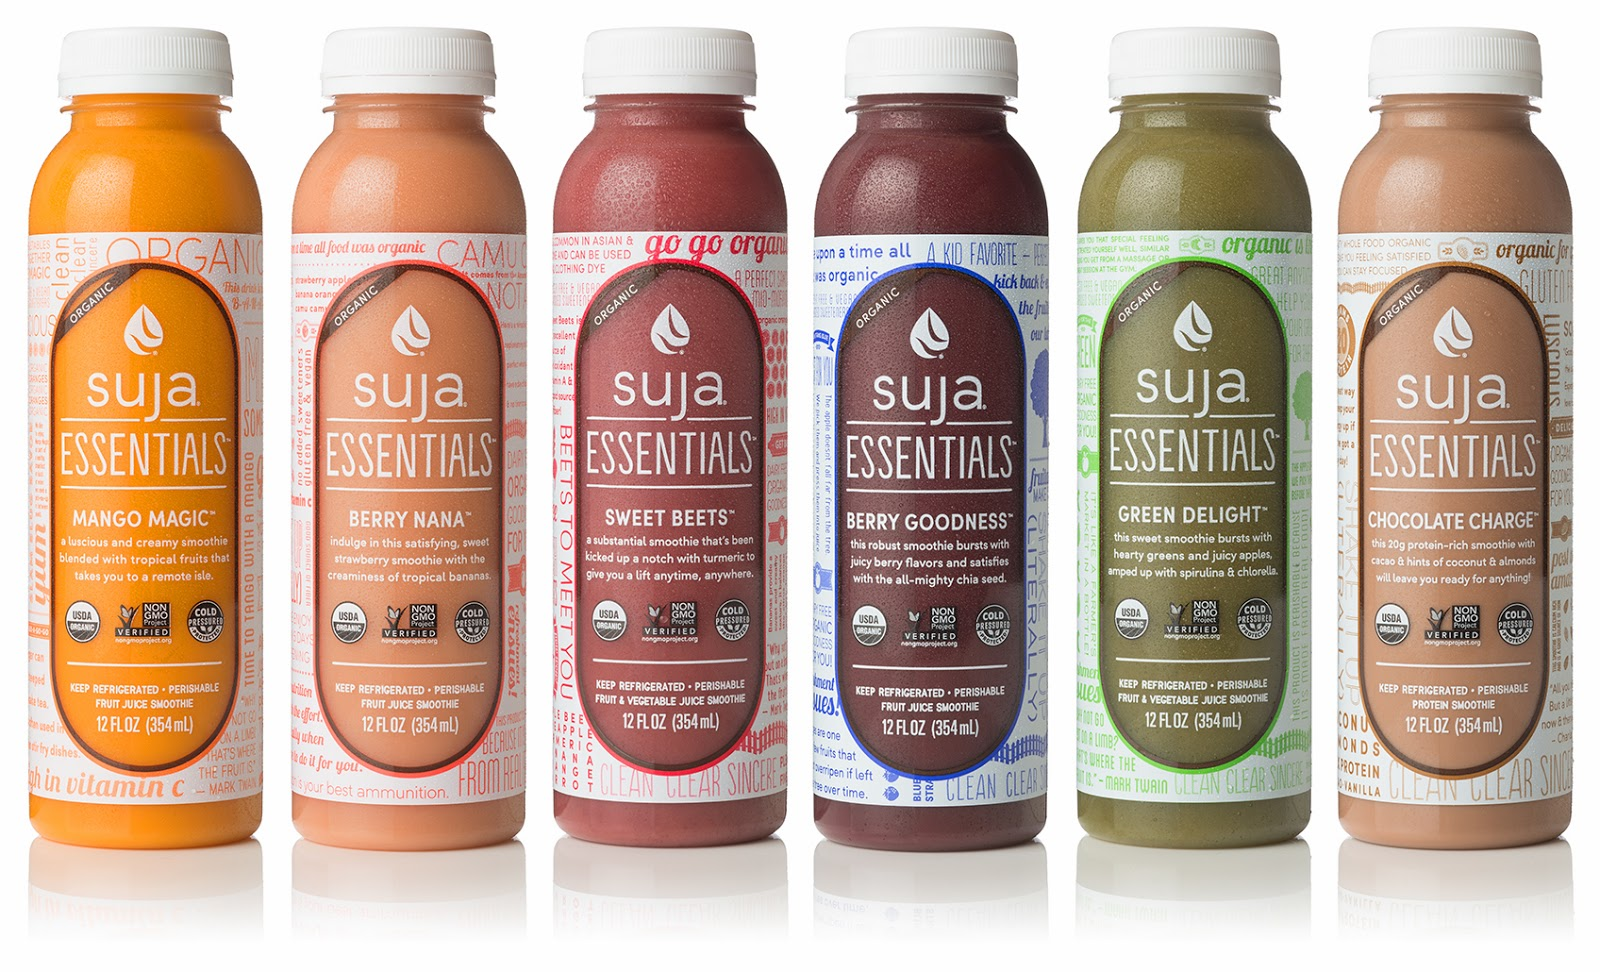 Possible Free Suja Essentials